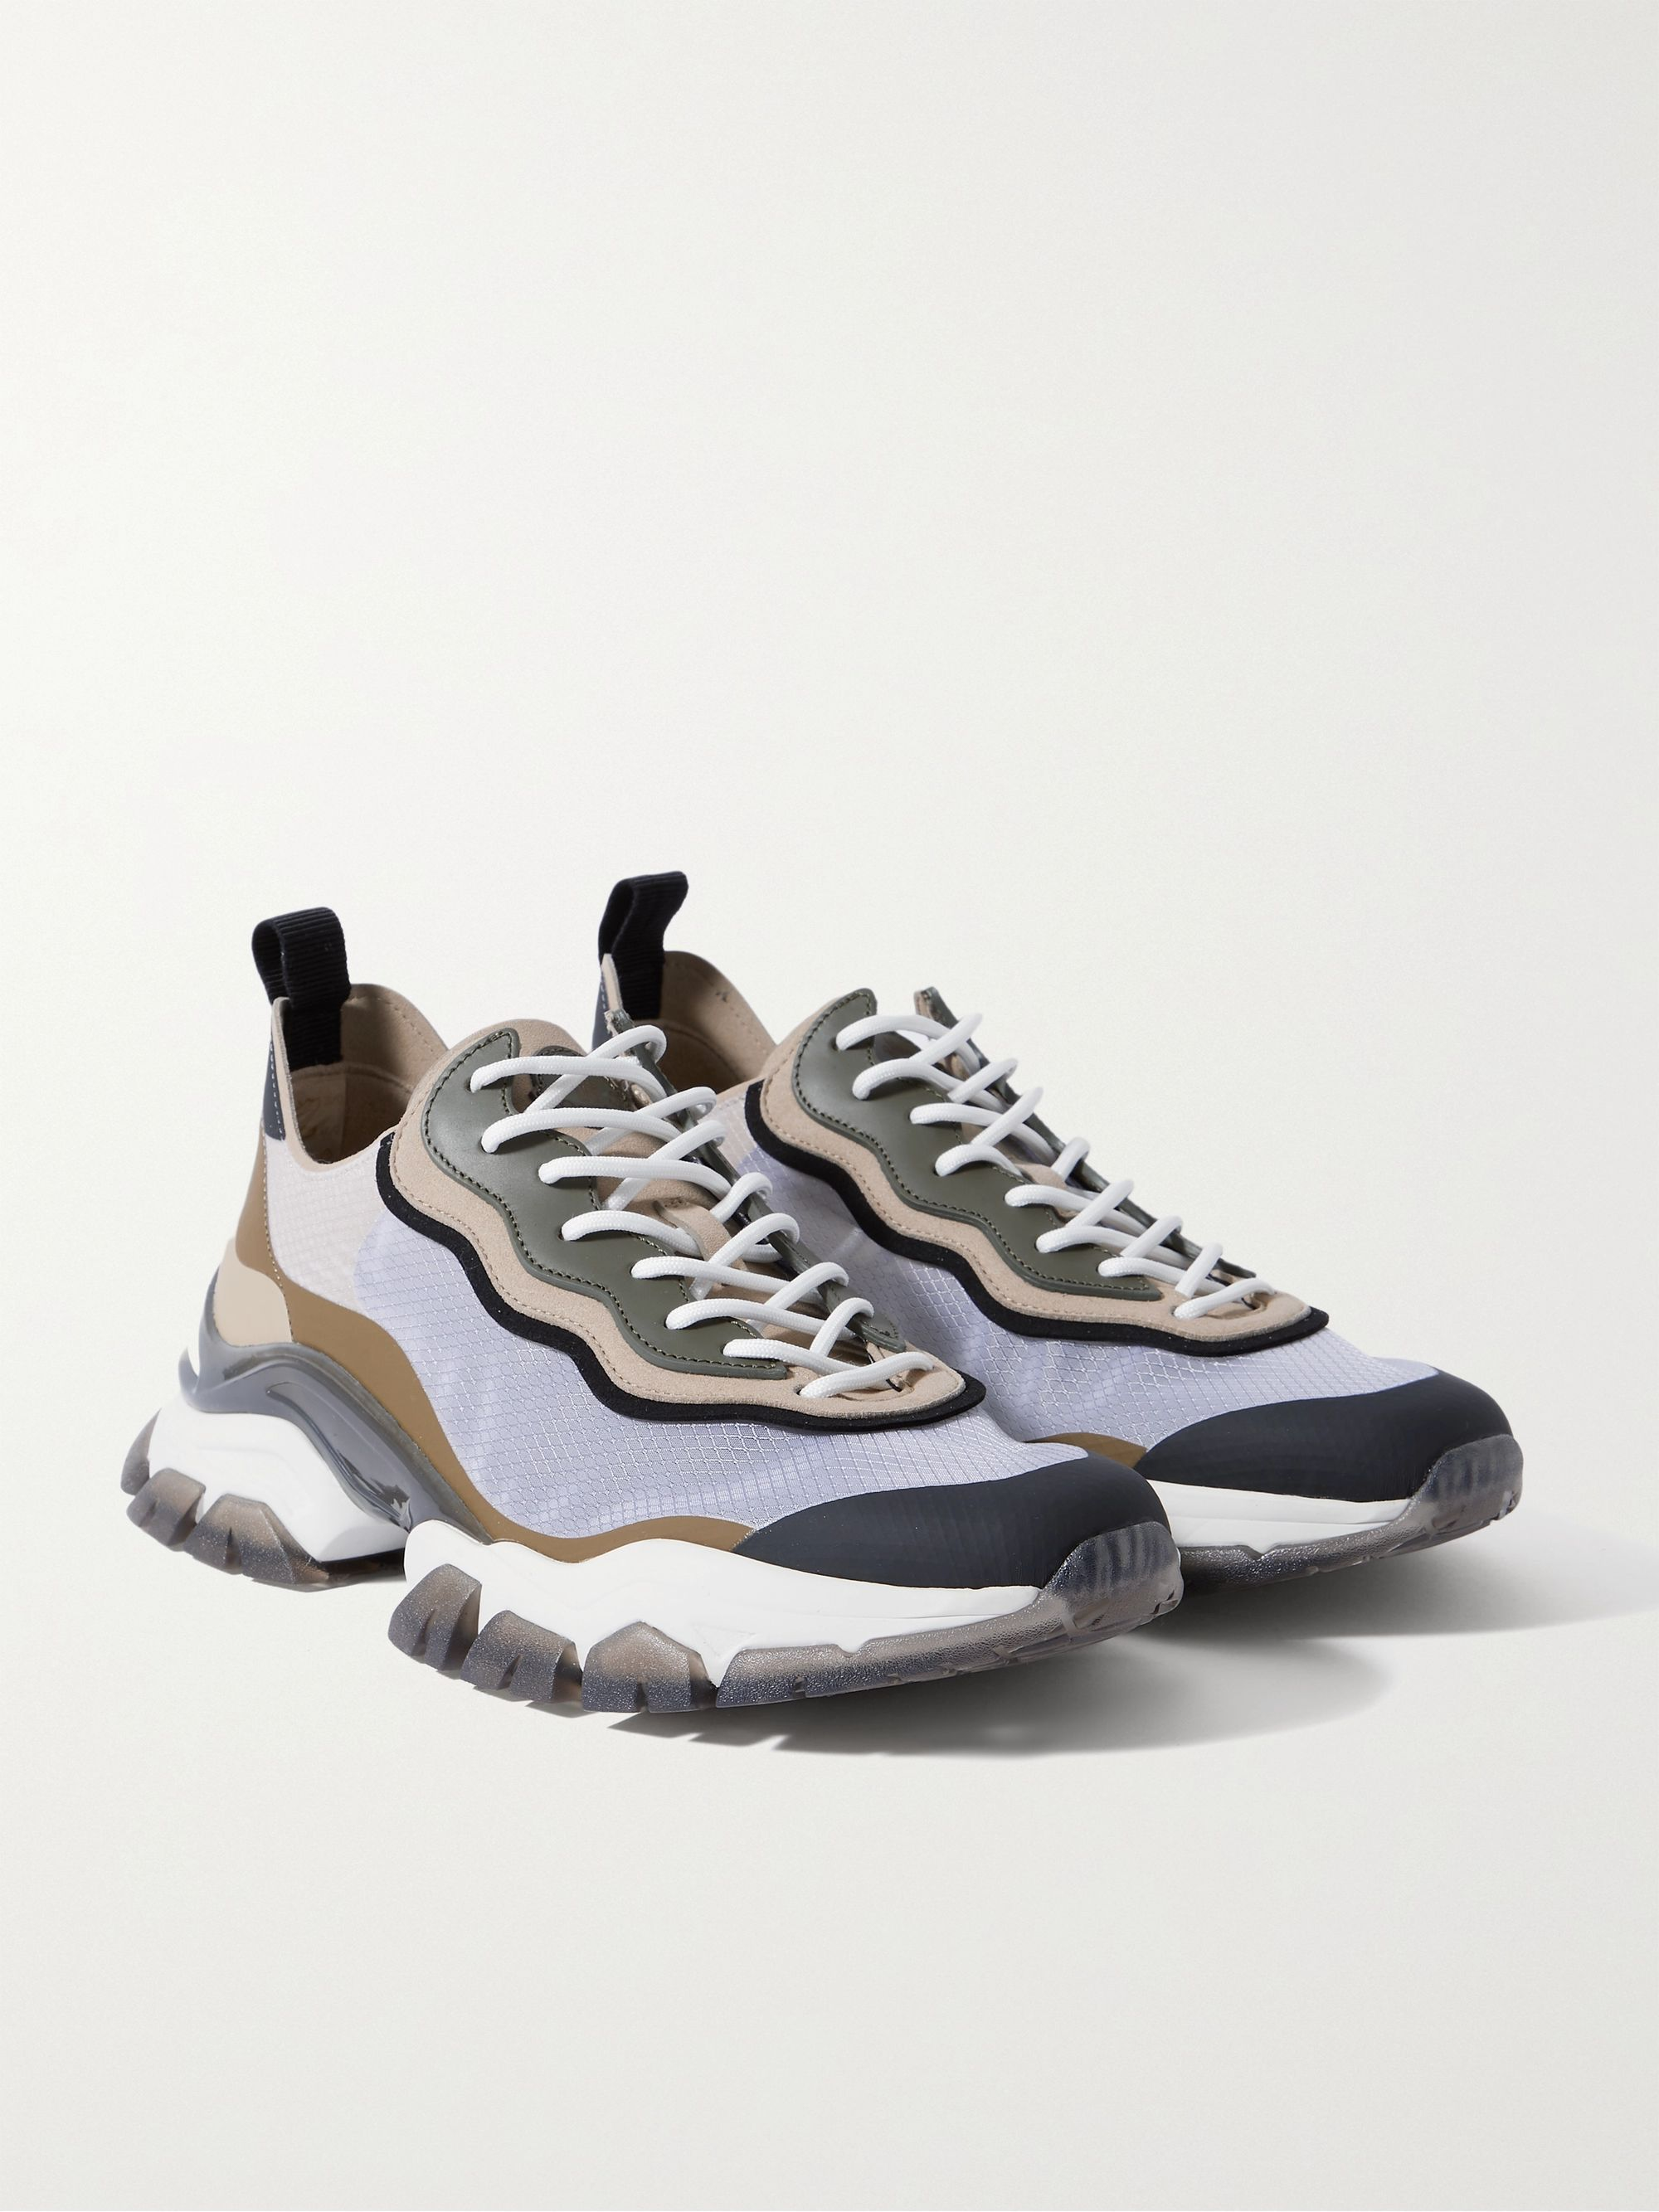 MONCLER Leave No Trace Leather, Suede and Ripstop Sneakers